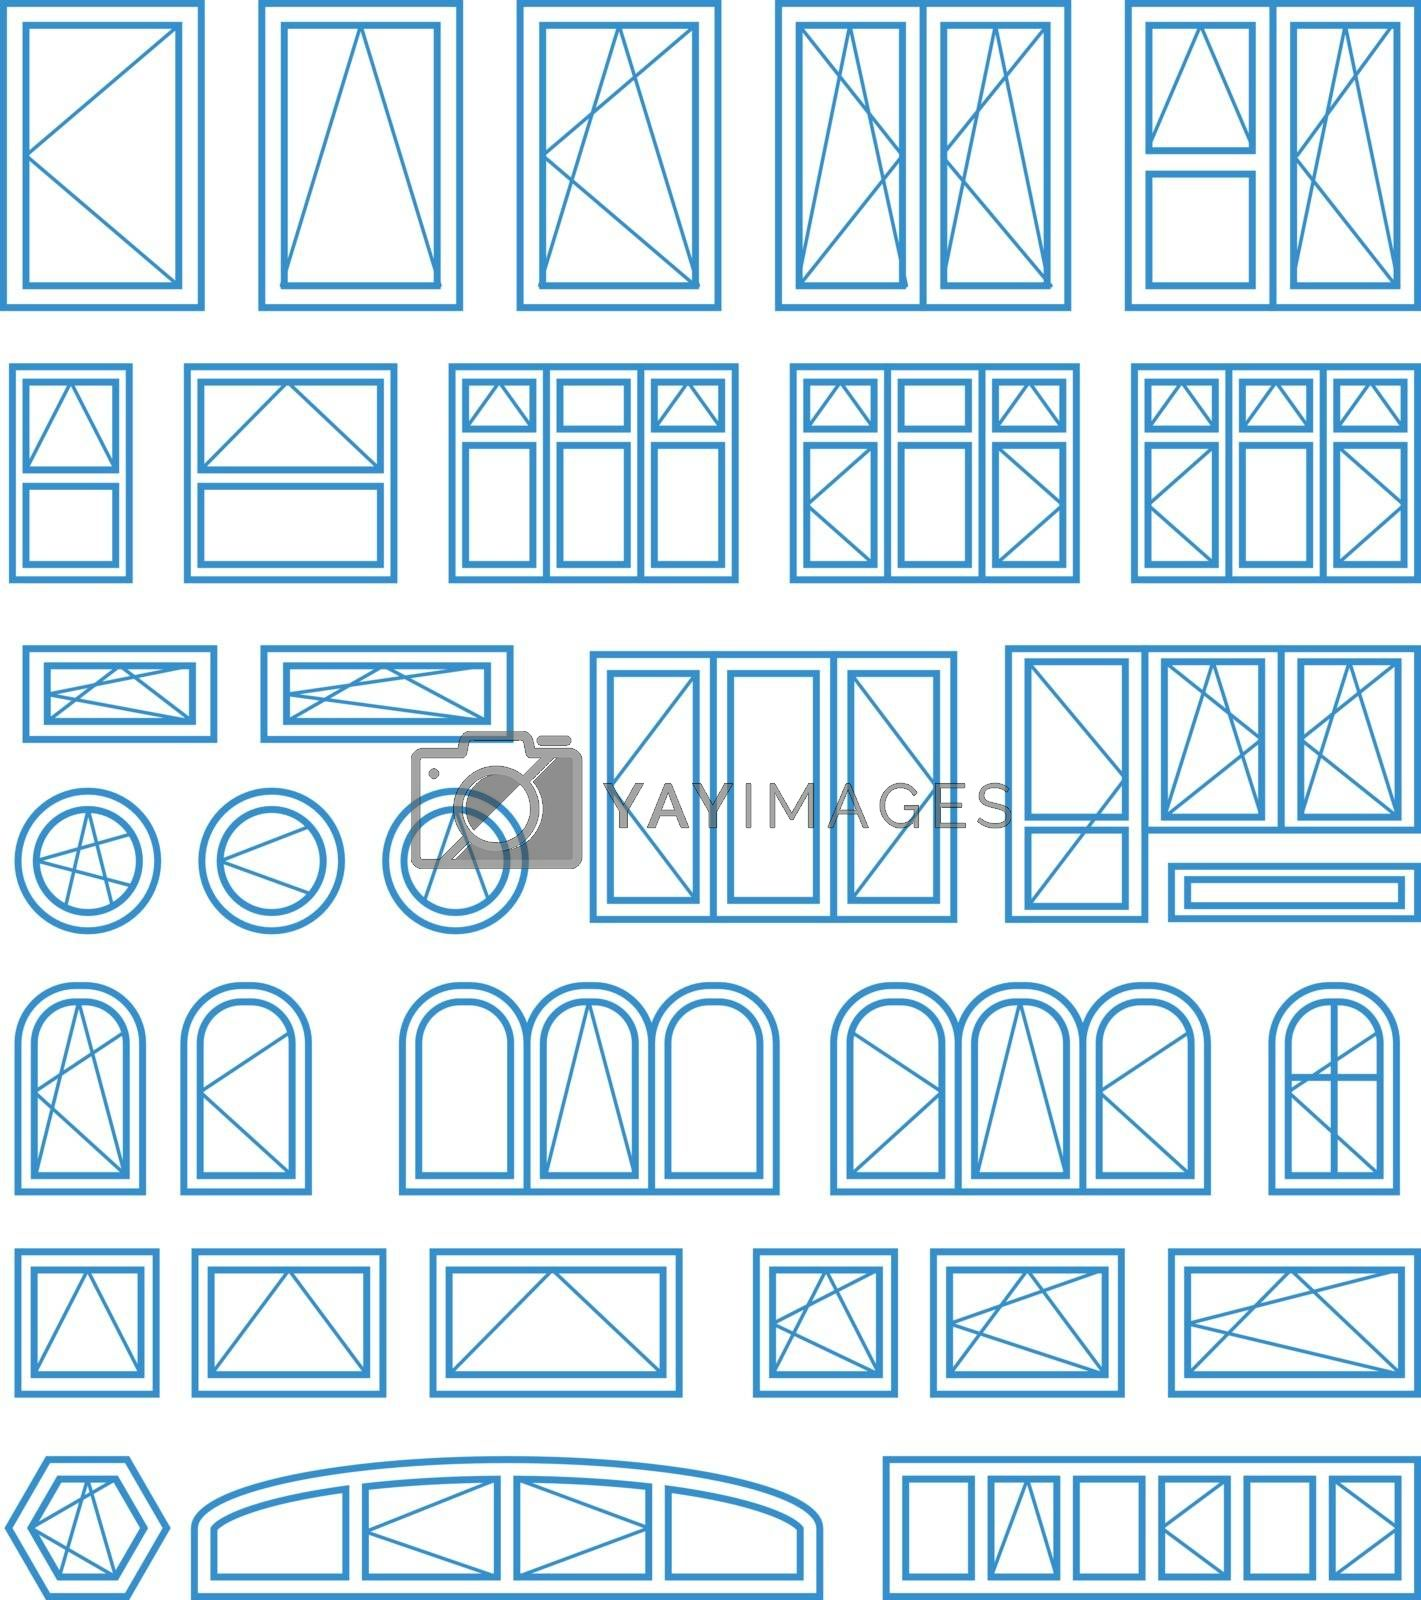 Types of opening and closing windows and doors. Vector illustration on white background